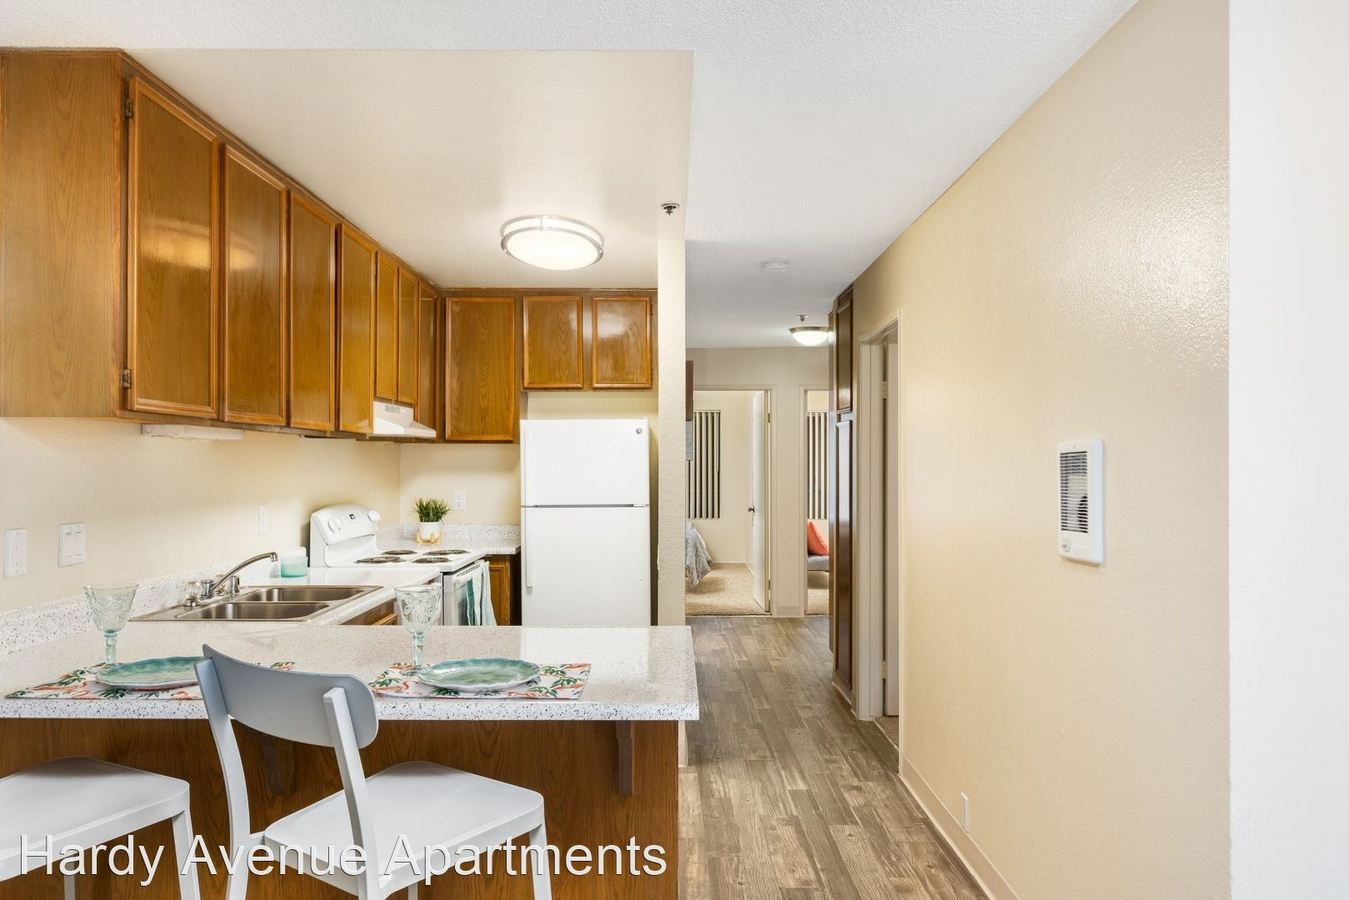 2 Bedrooms 2 Bathrooms Apartment for rent at 5584 Hardy Ave in San Diego, CA